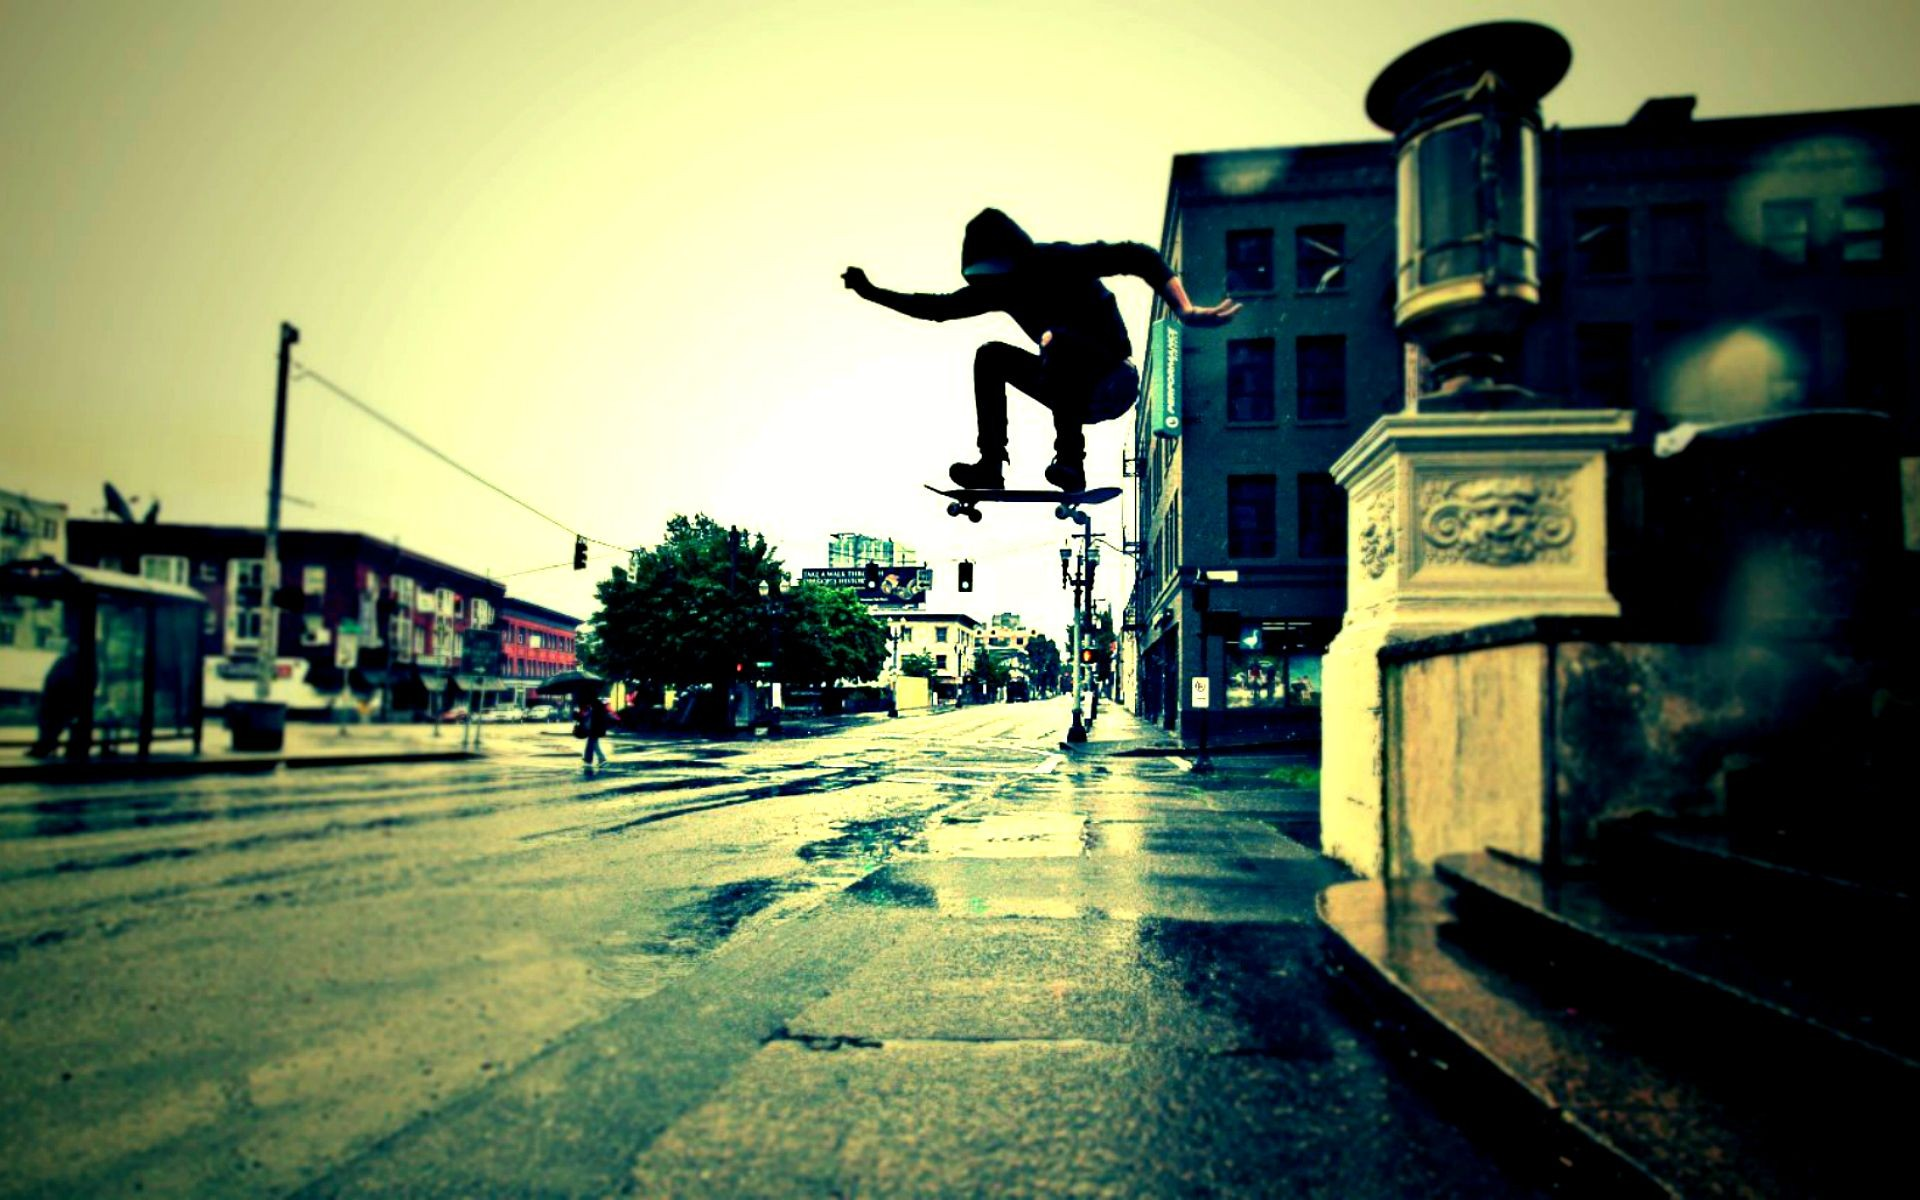 Urban skateboard trick Wallpapers Pictures Photos Images. «